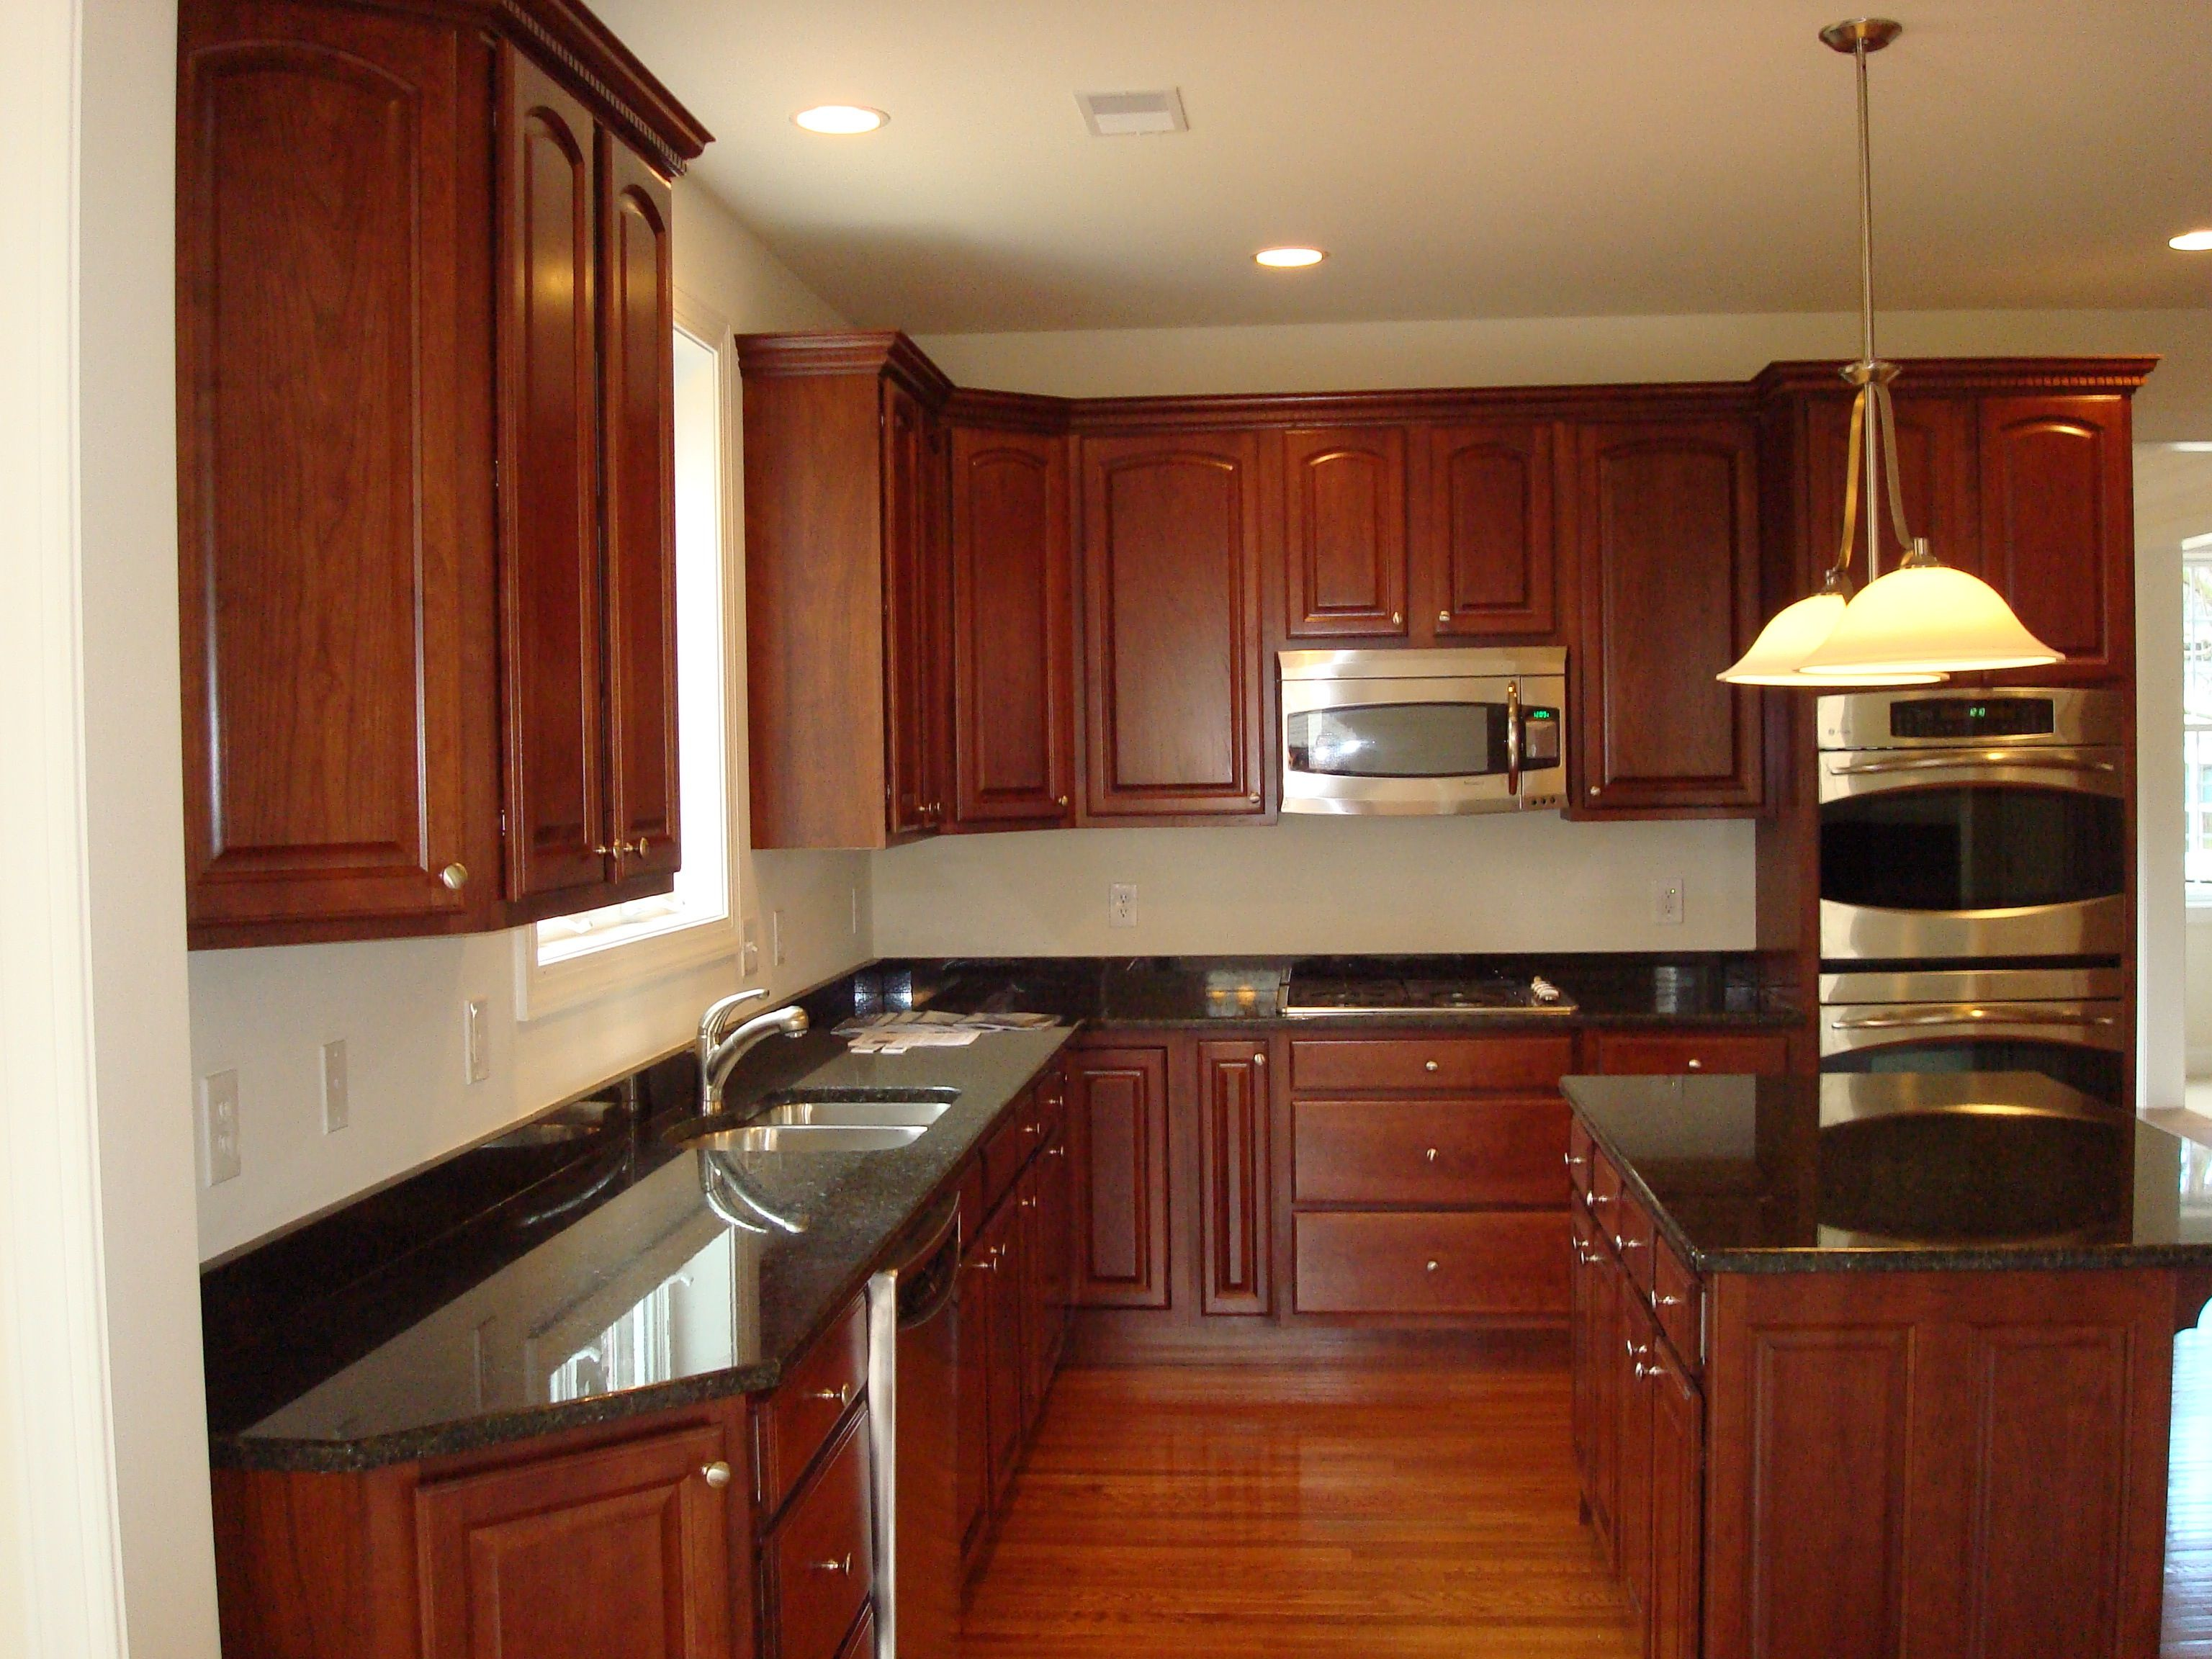 black granite w/ dark cabinets | Kitchen design granite ... on Dark Granite Countertops With Dark Cabinets  id=68692